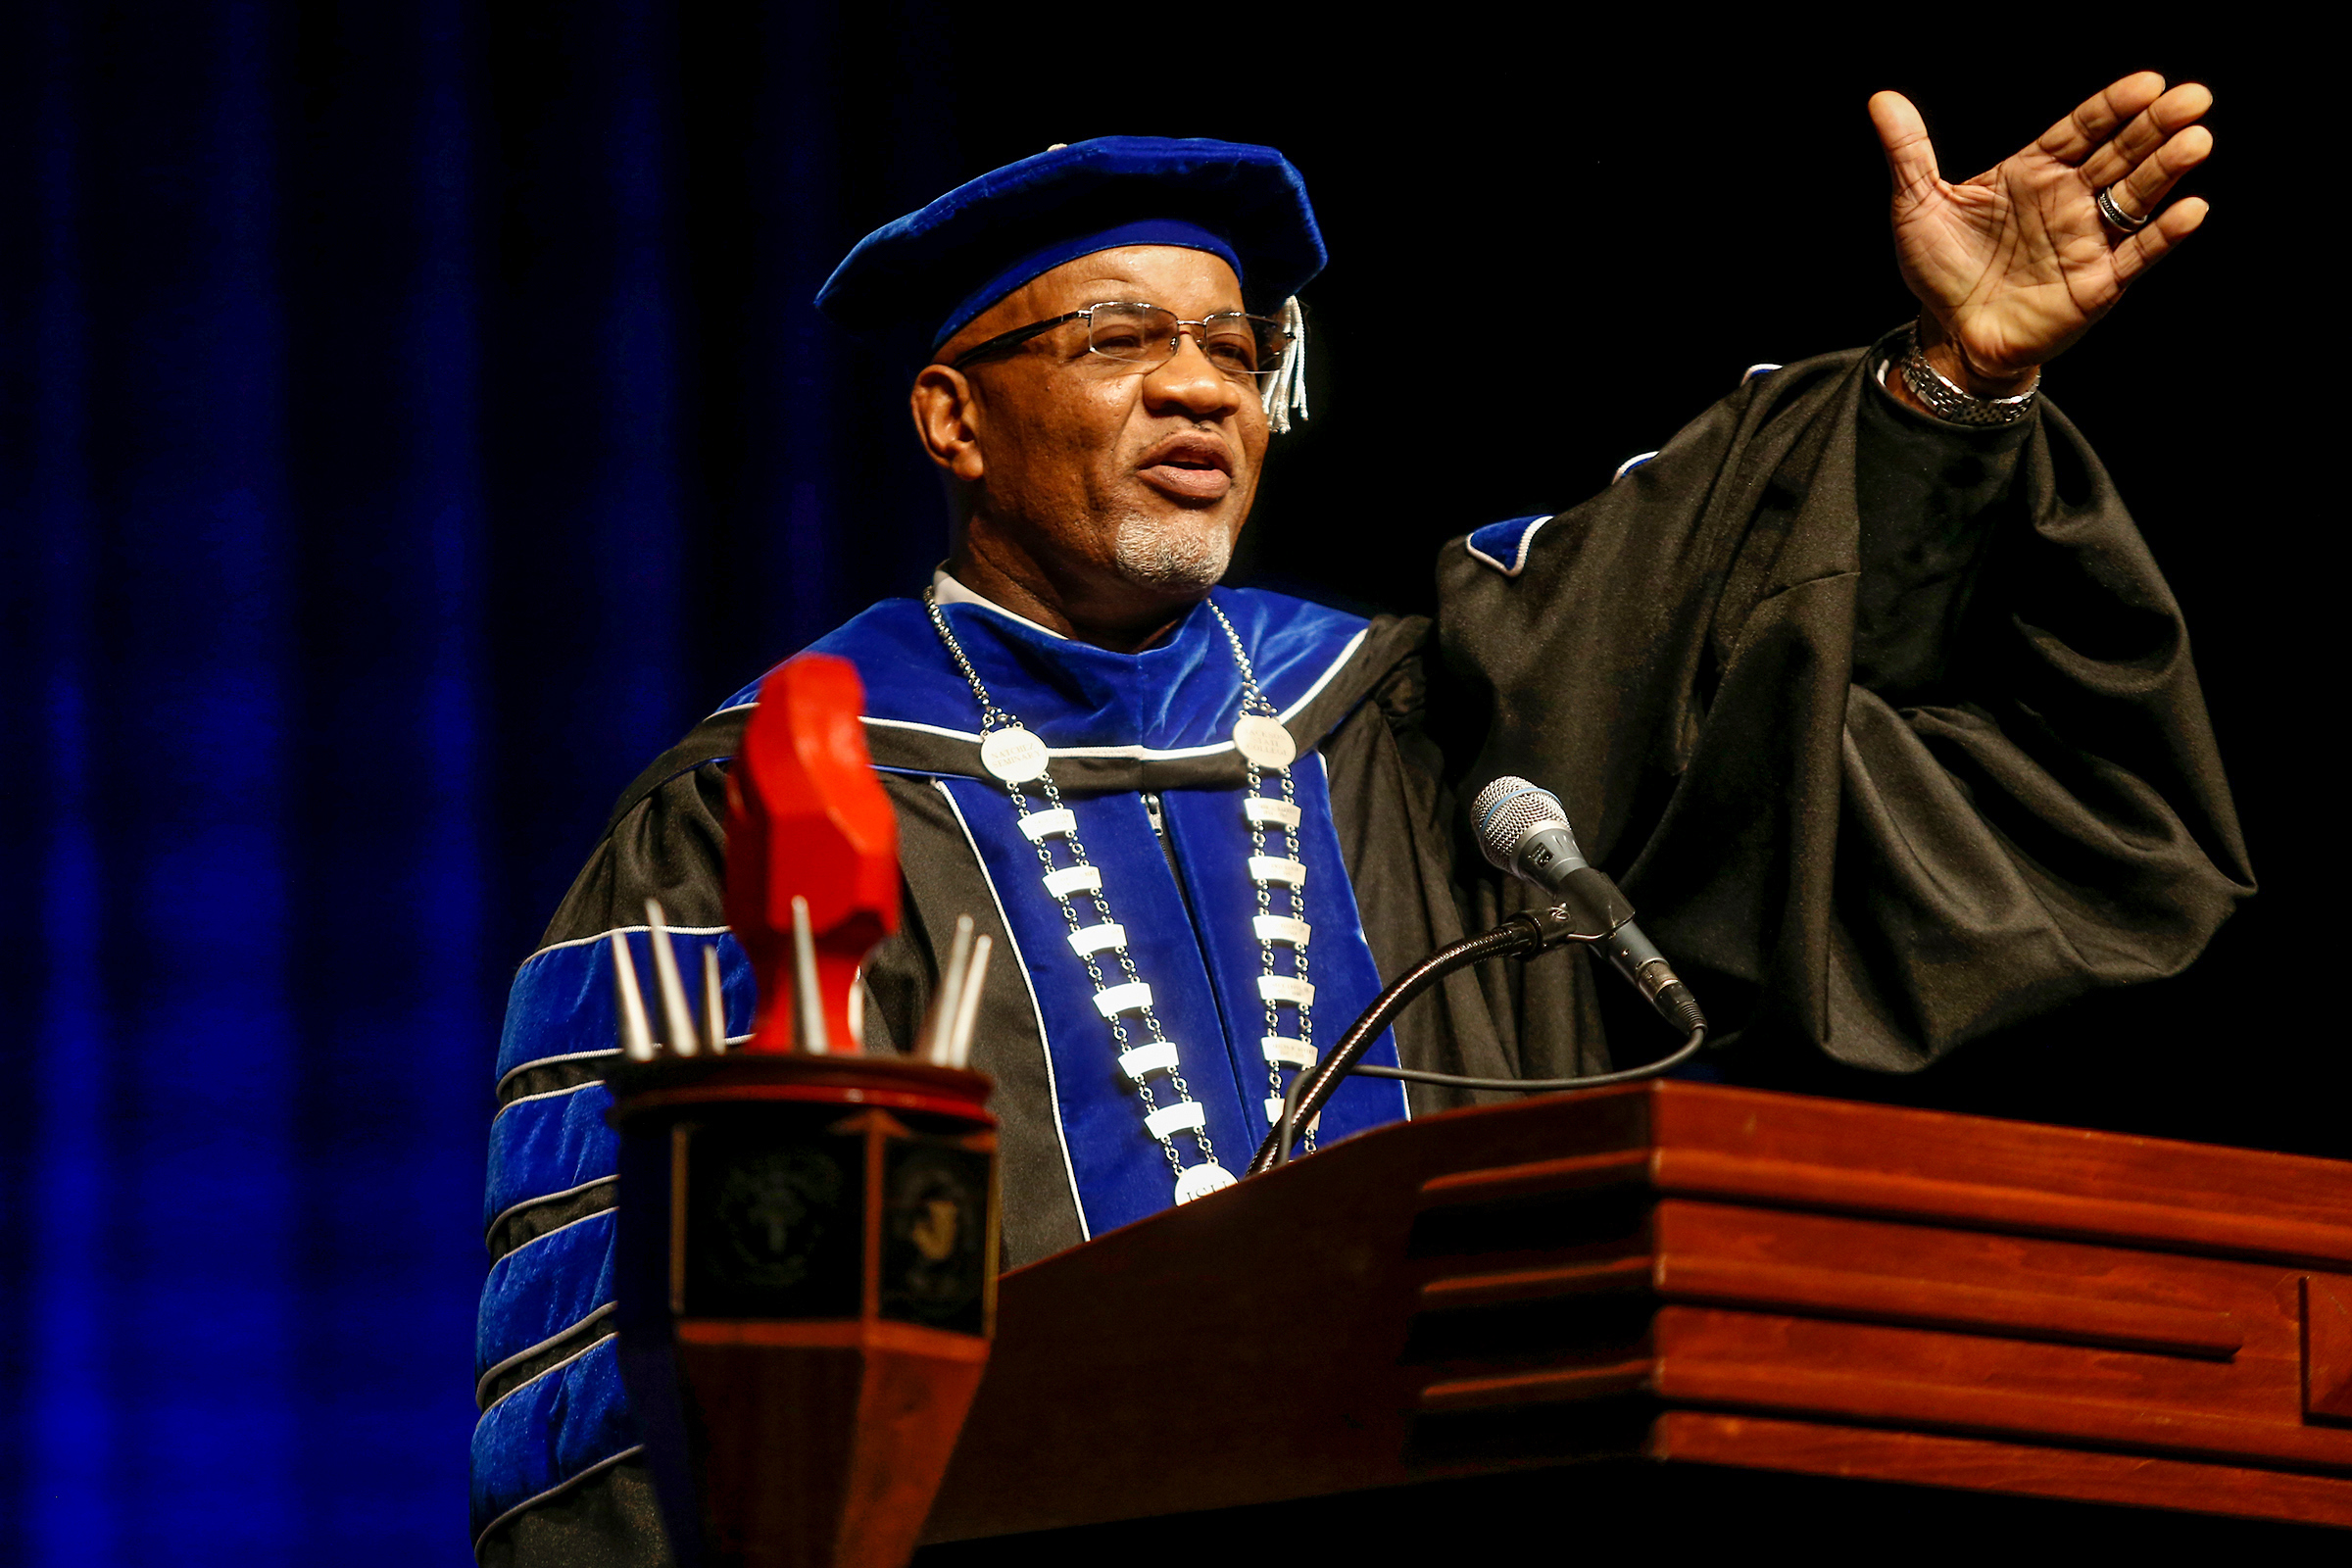 """At the end of the day, I'm so thankful to receive this medallion. Like the old saying goes: 'It doesn't mean a thing until you have the bling,'"" joked Dr. William B. Bynum Jr. after he was formally installed as the 11th president of Jackson State University during his investiture service at Rose E. McCoy Auditorium on Thursday, Oct. 11.  (Photo by Charles A. Smith/JSU)"